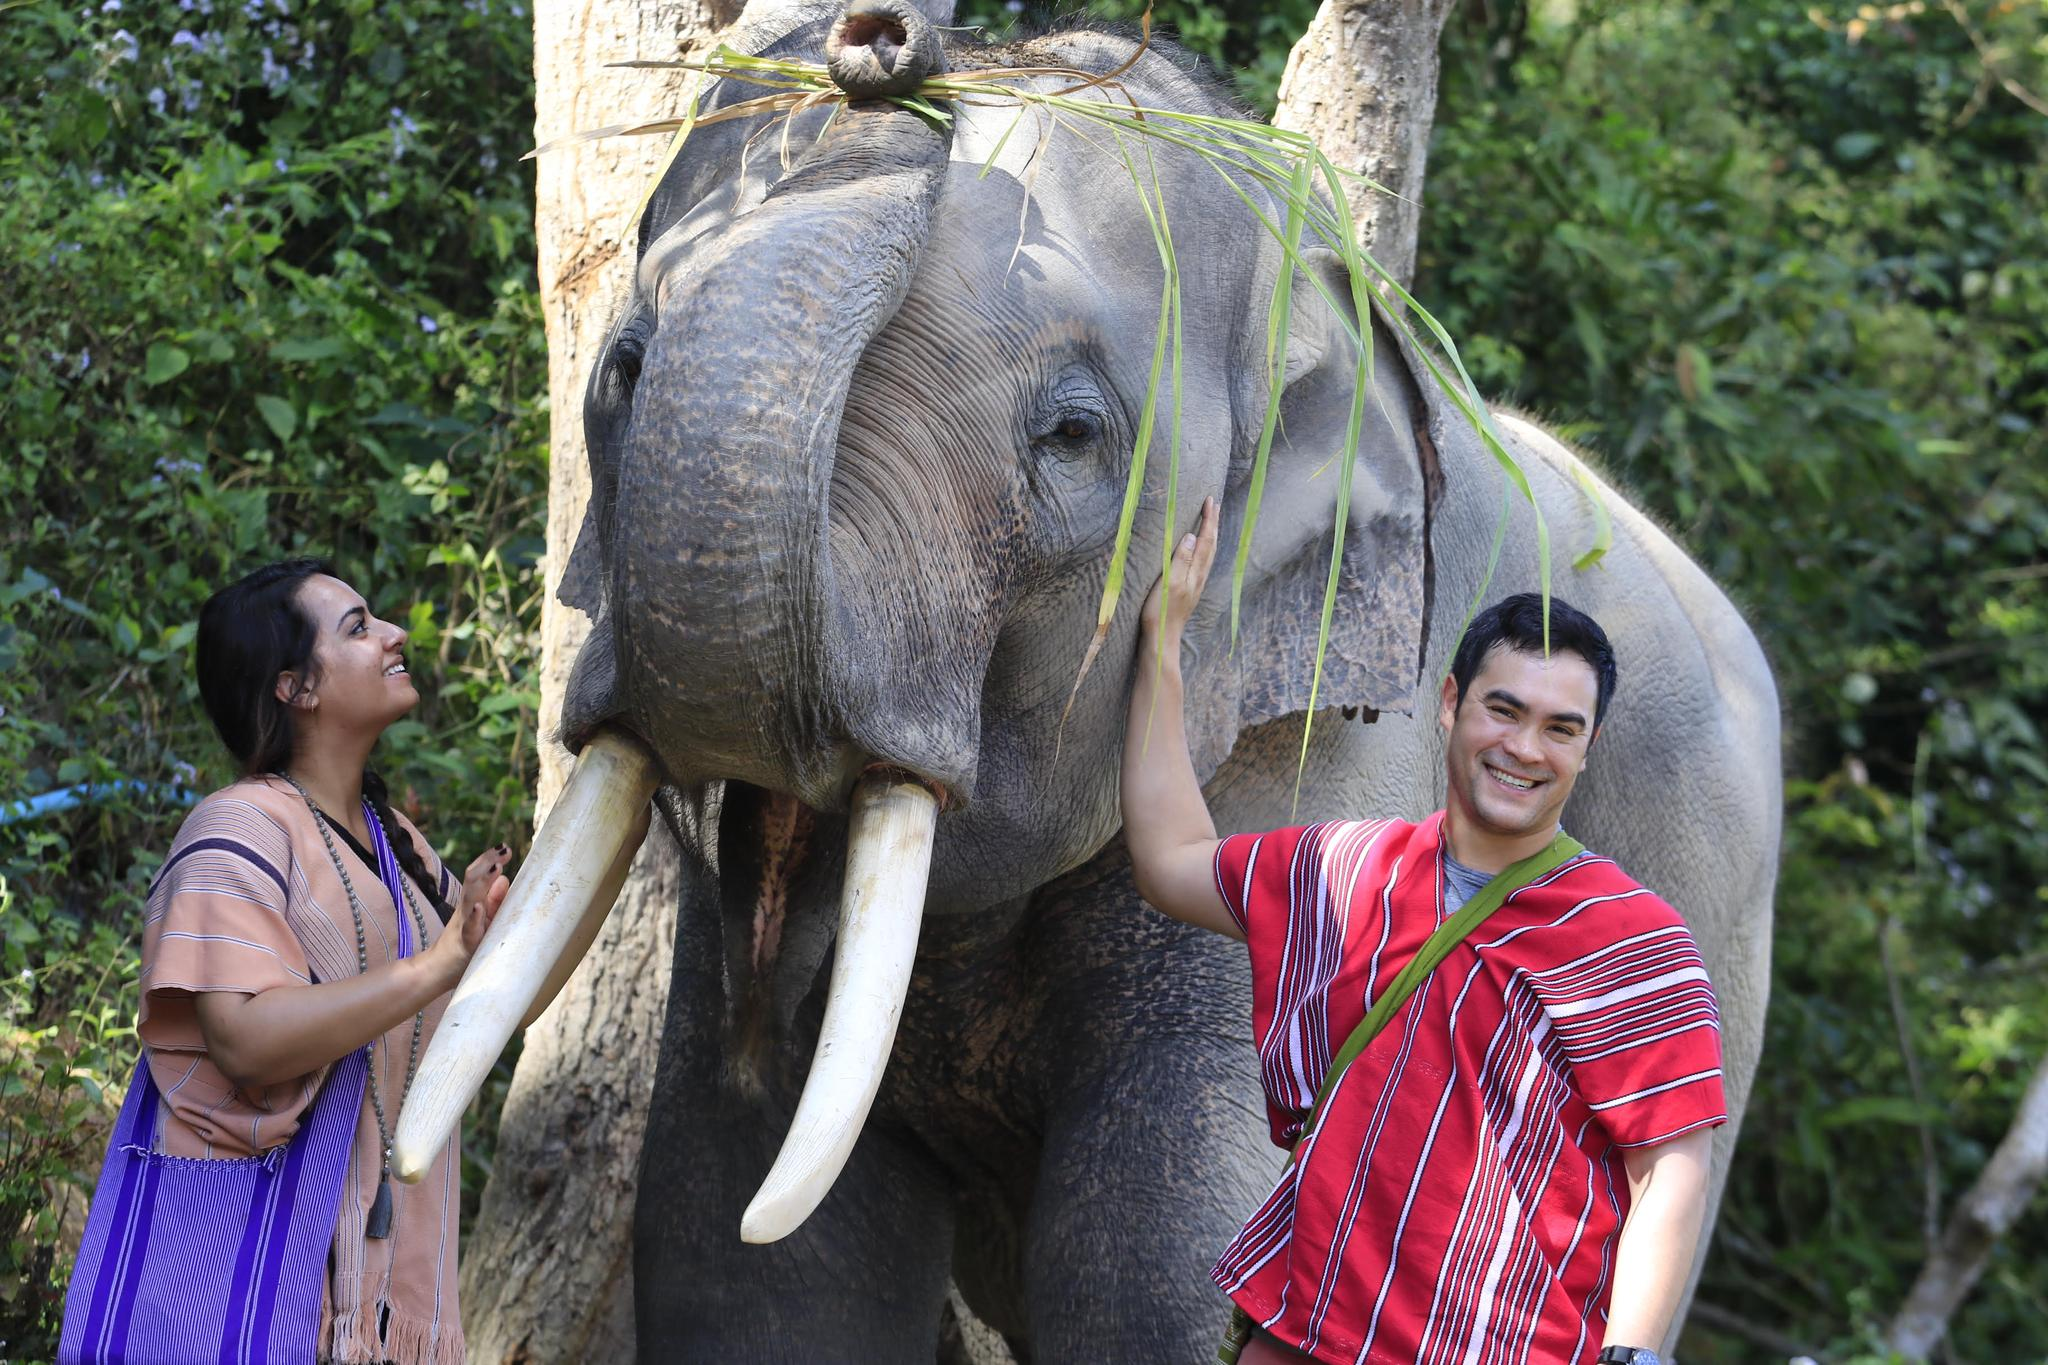 One of the best days ever! Eric gifted Sonal a full day and night with Karen Tribe Native Elephants. An organization rescuing elephants, Sonal's favorite animal. There isn't a single photo where Sonal isn't staring at the majestic animals with an ear to ear smile. Eric definitely nailed it.